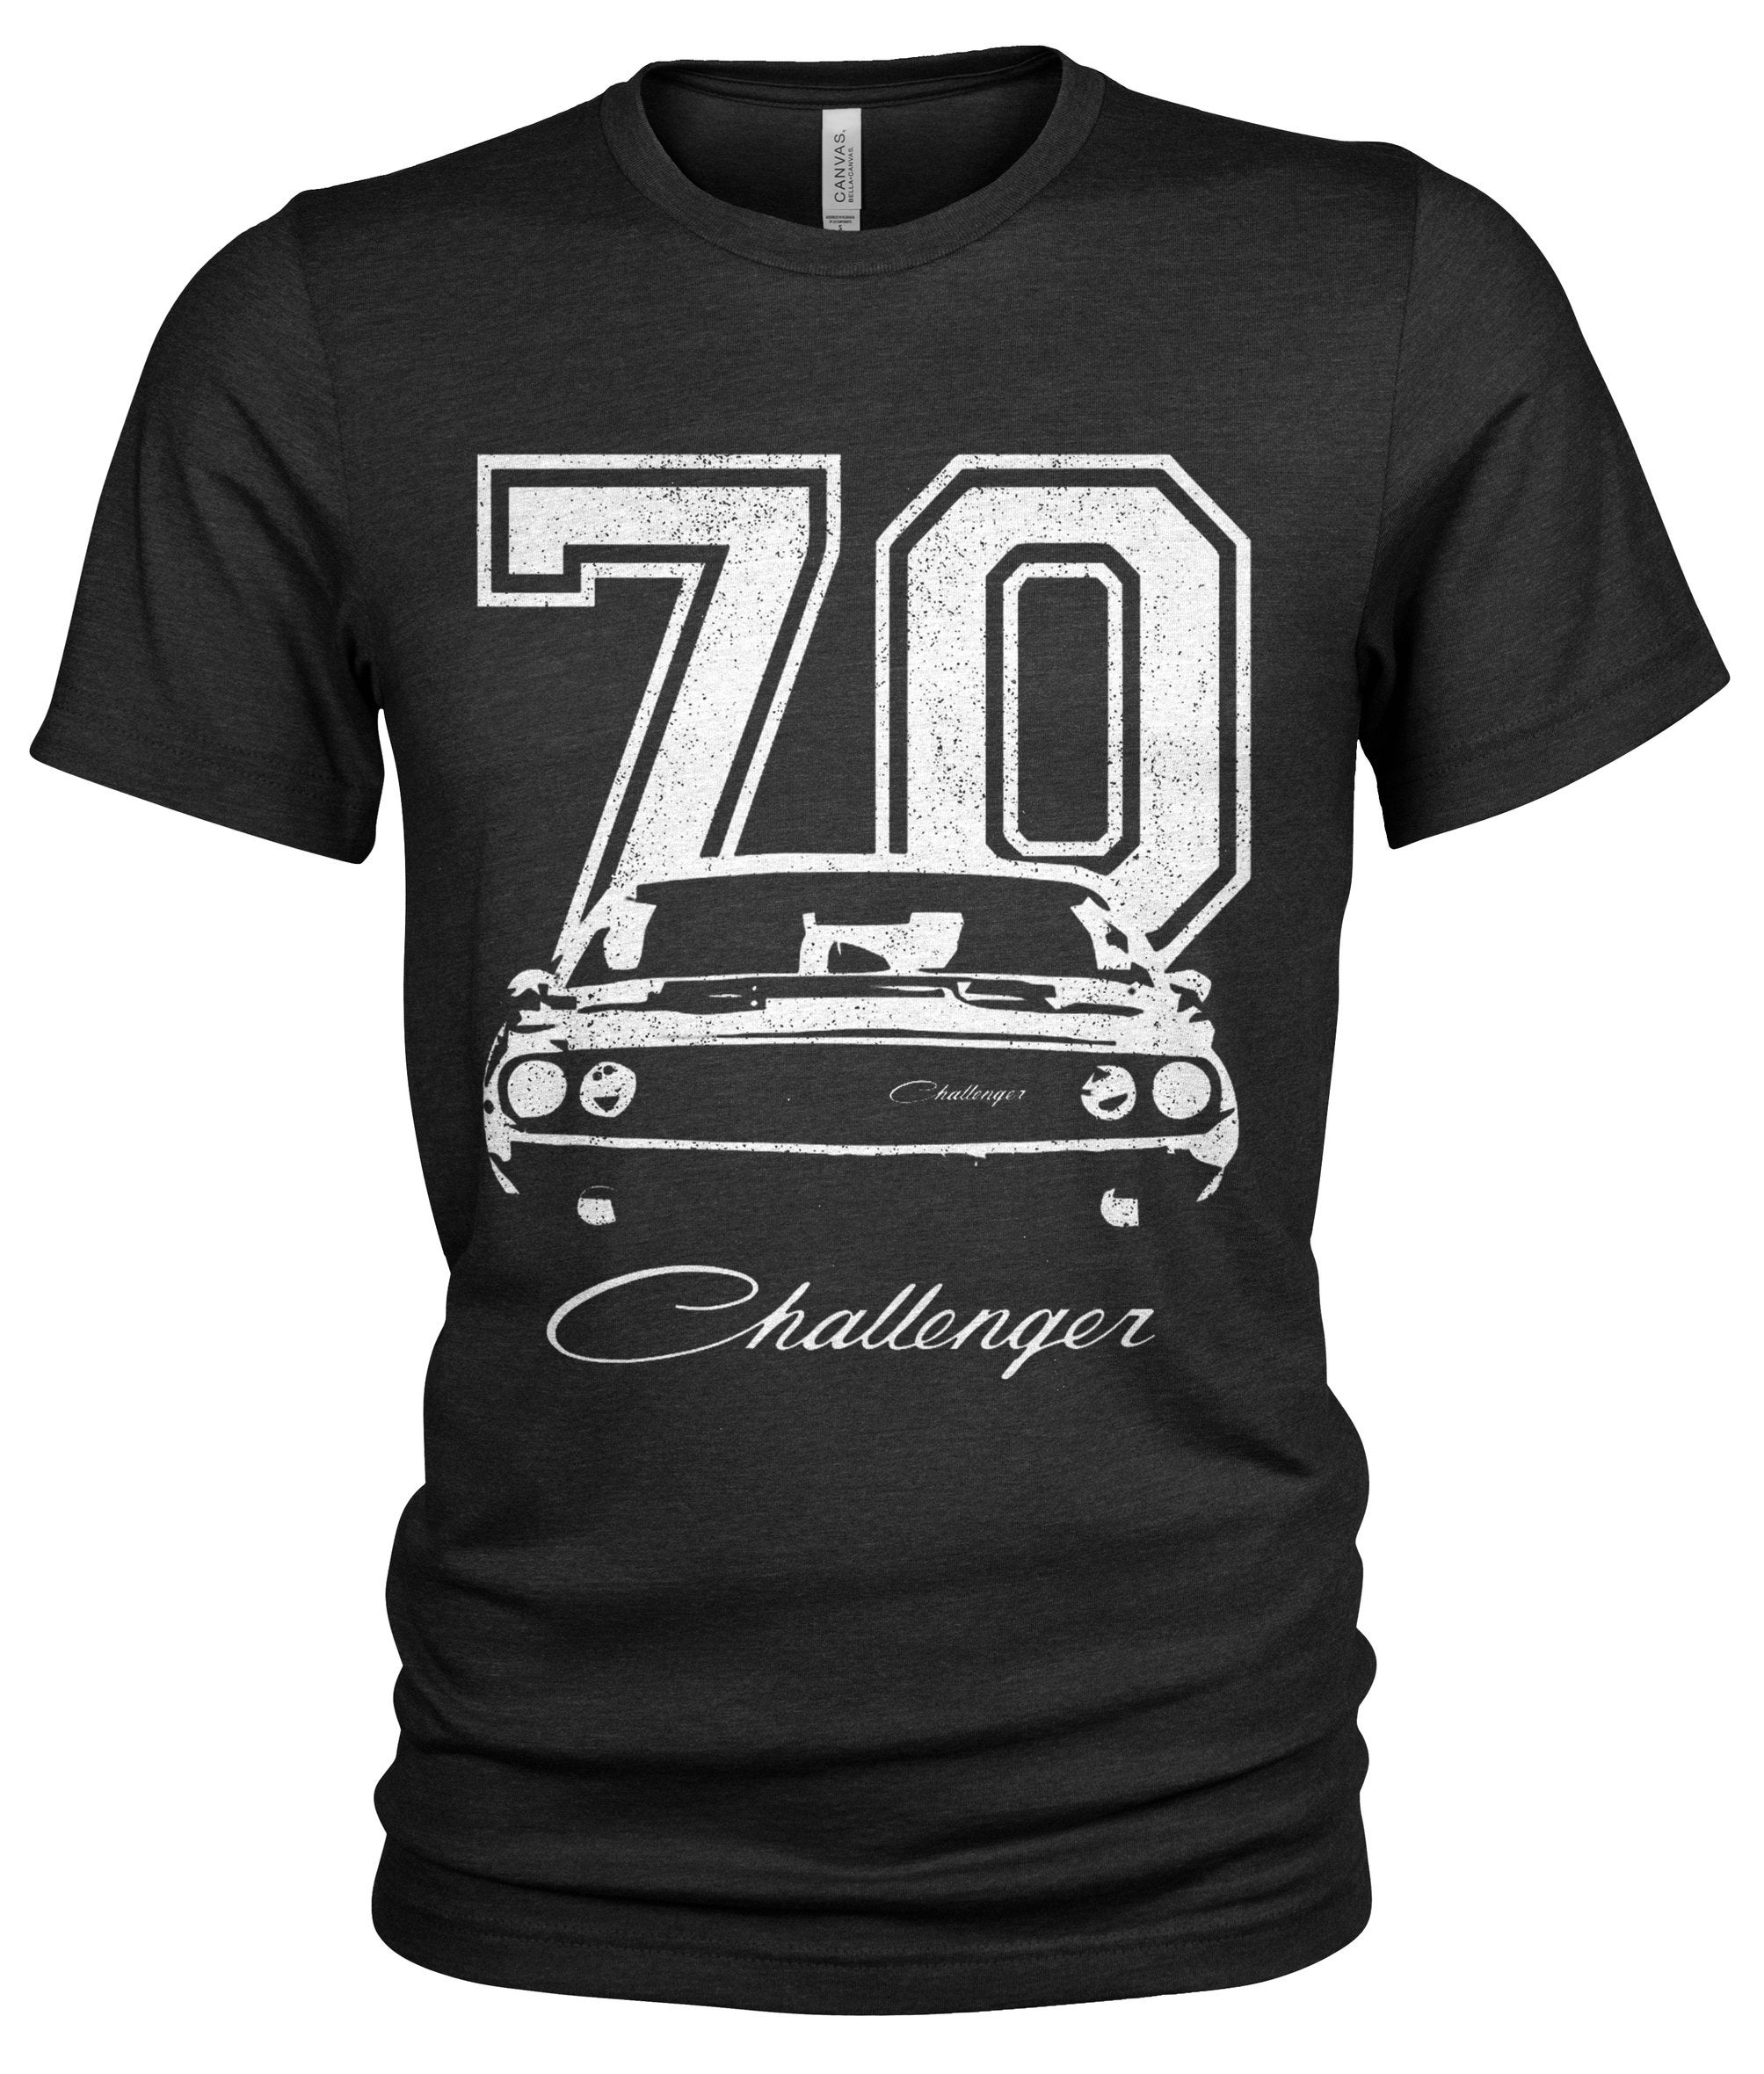 1970 Dodge Charger for sale compared to CraigsList   Only ...